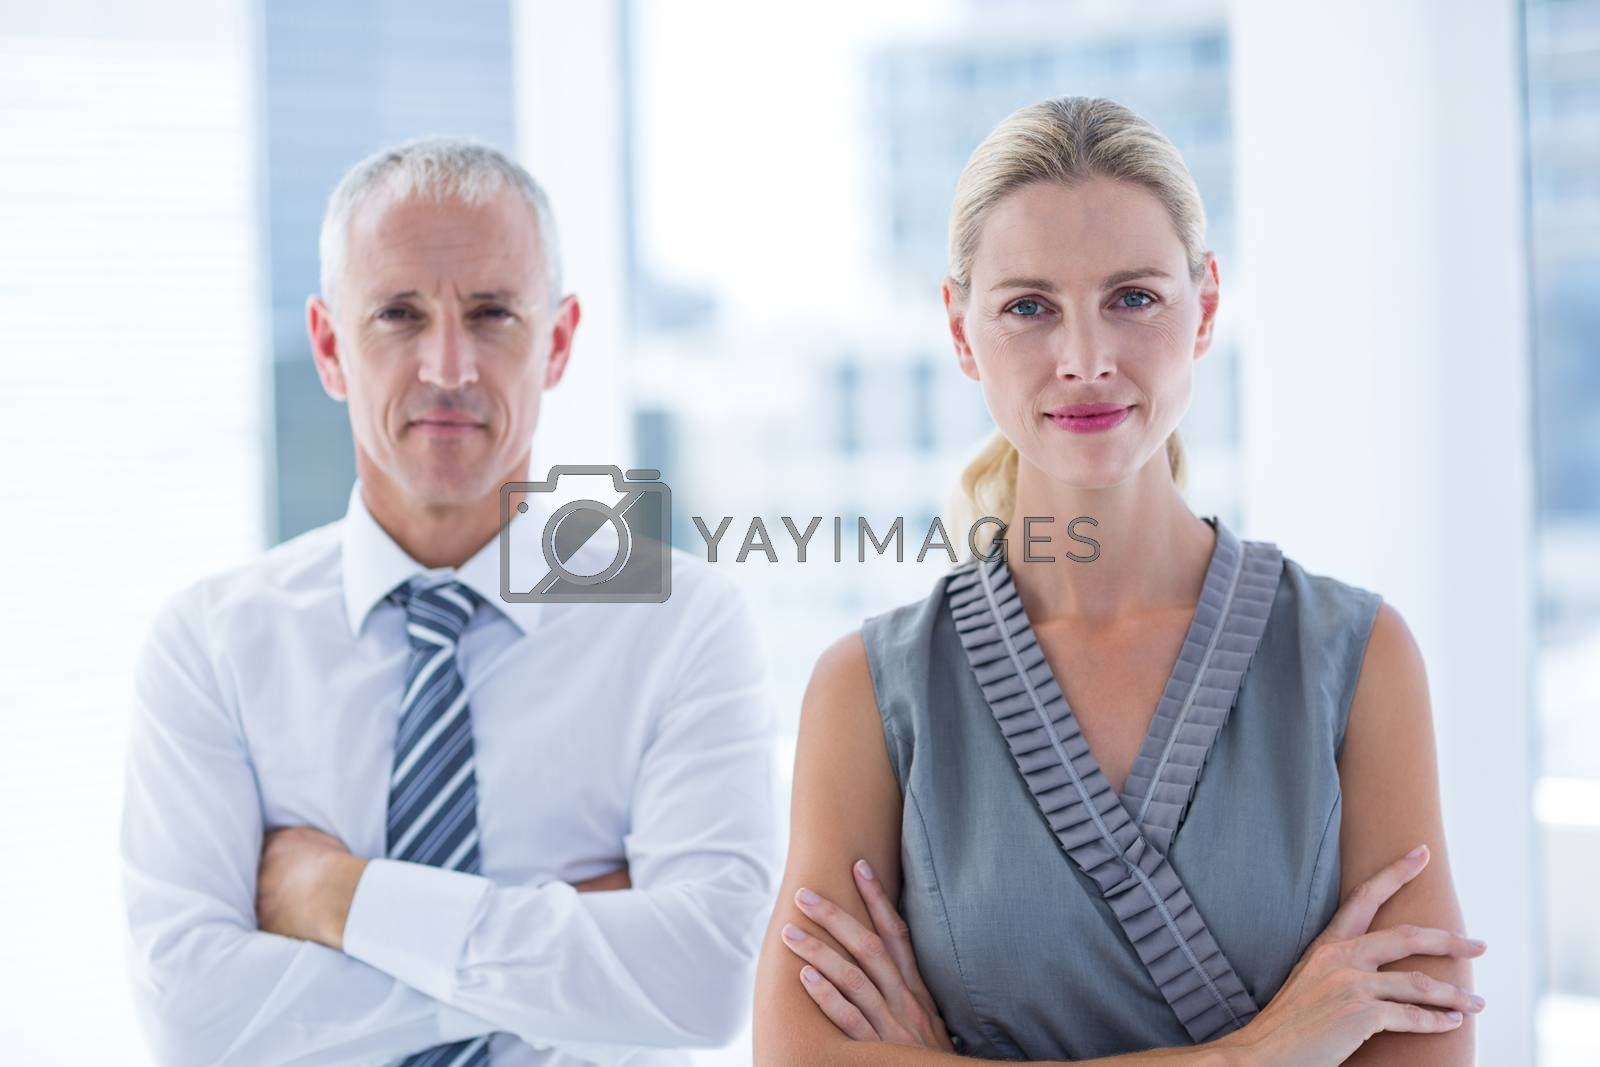 Royalty free image of Two business people looking at the camera by Wavebreakmedia